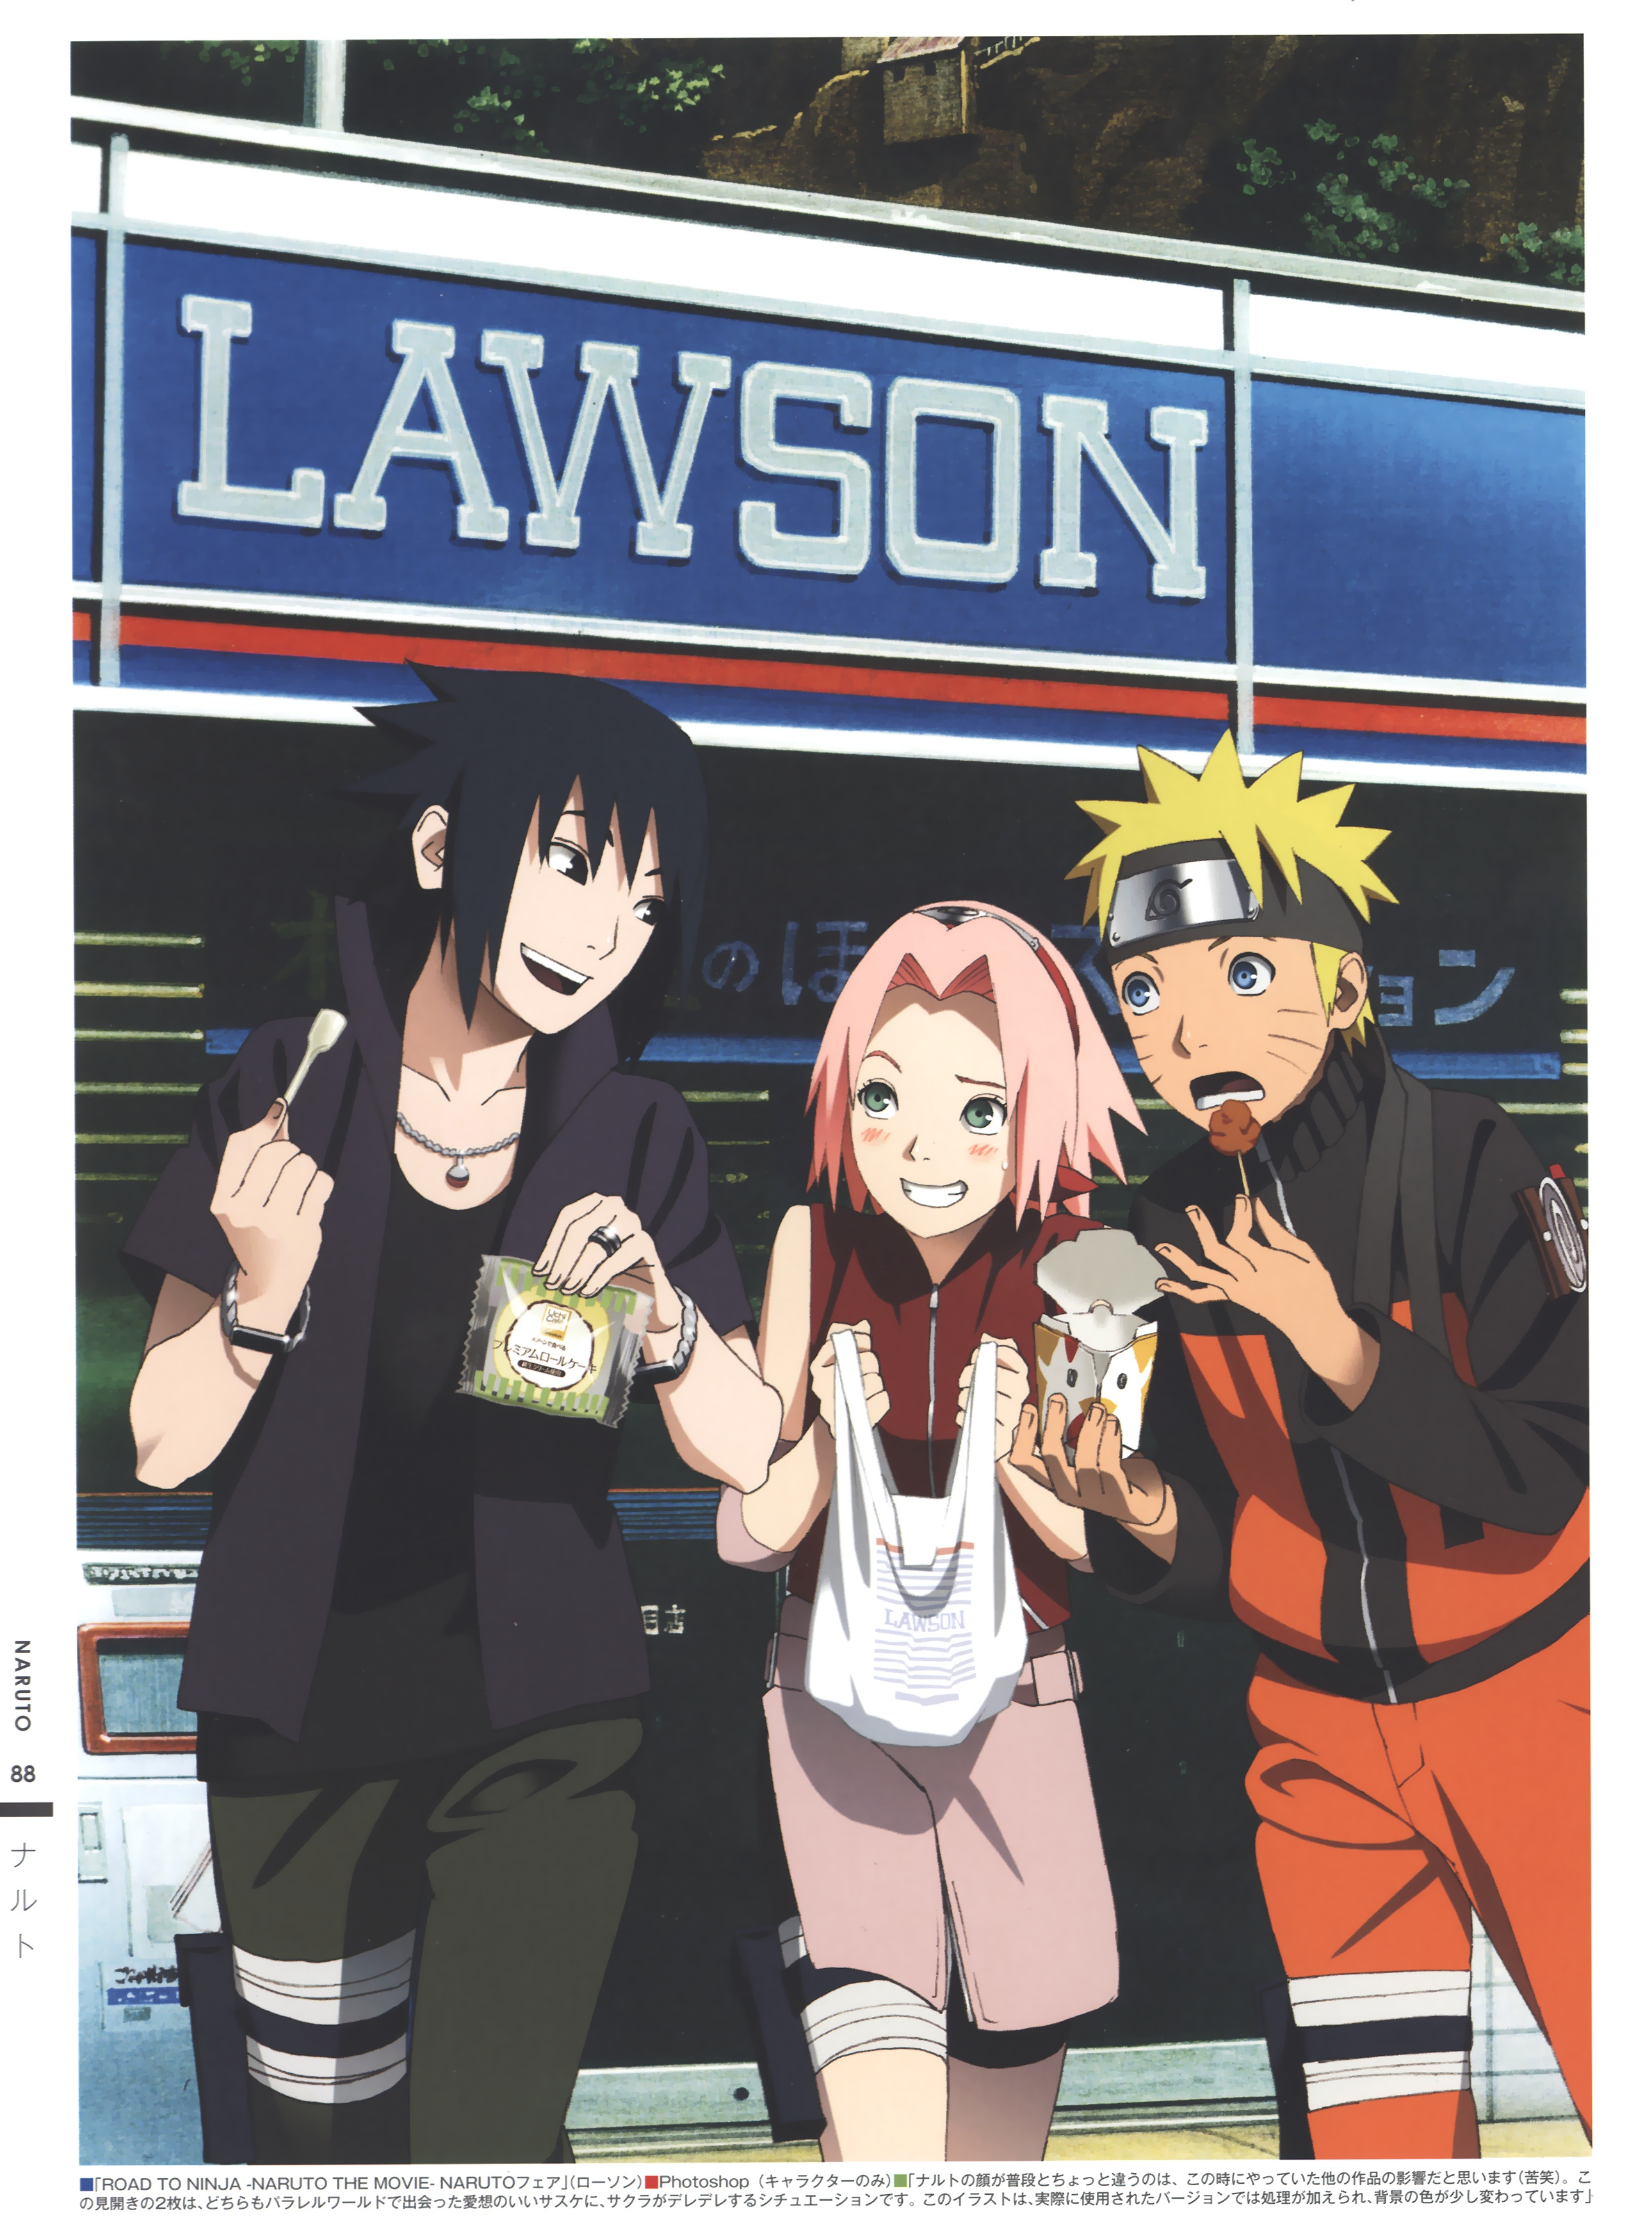 Road to Ninja Naruto the Movie Sasuke, Sakura, and Naruto Come from Lawson with Snacks